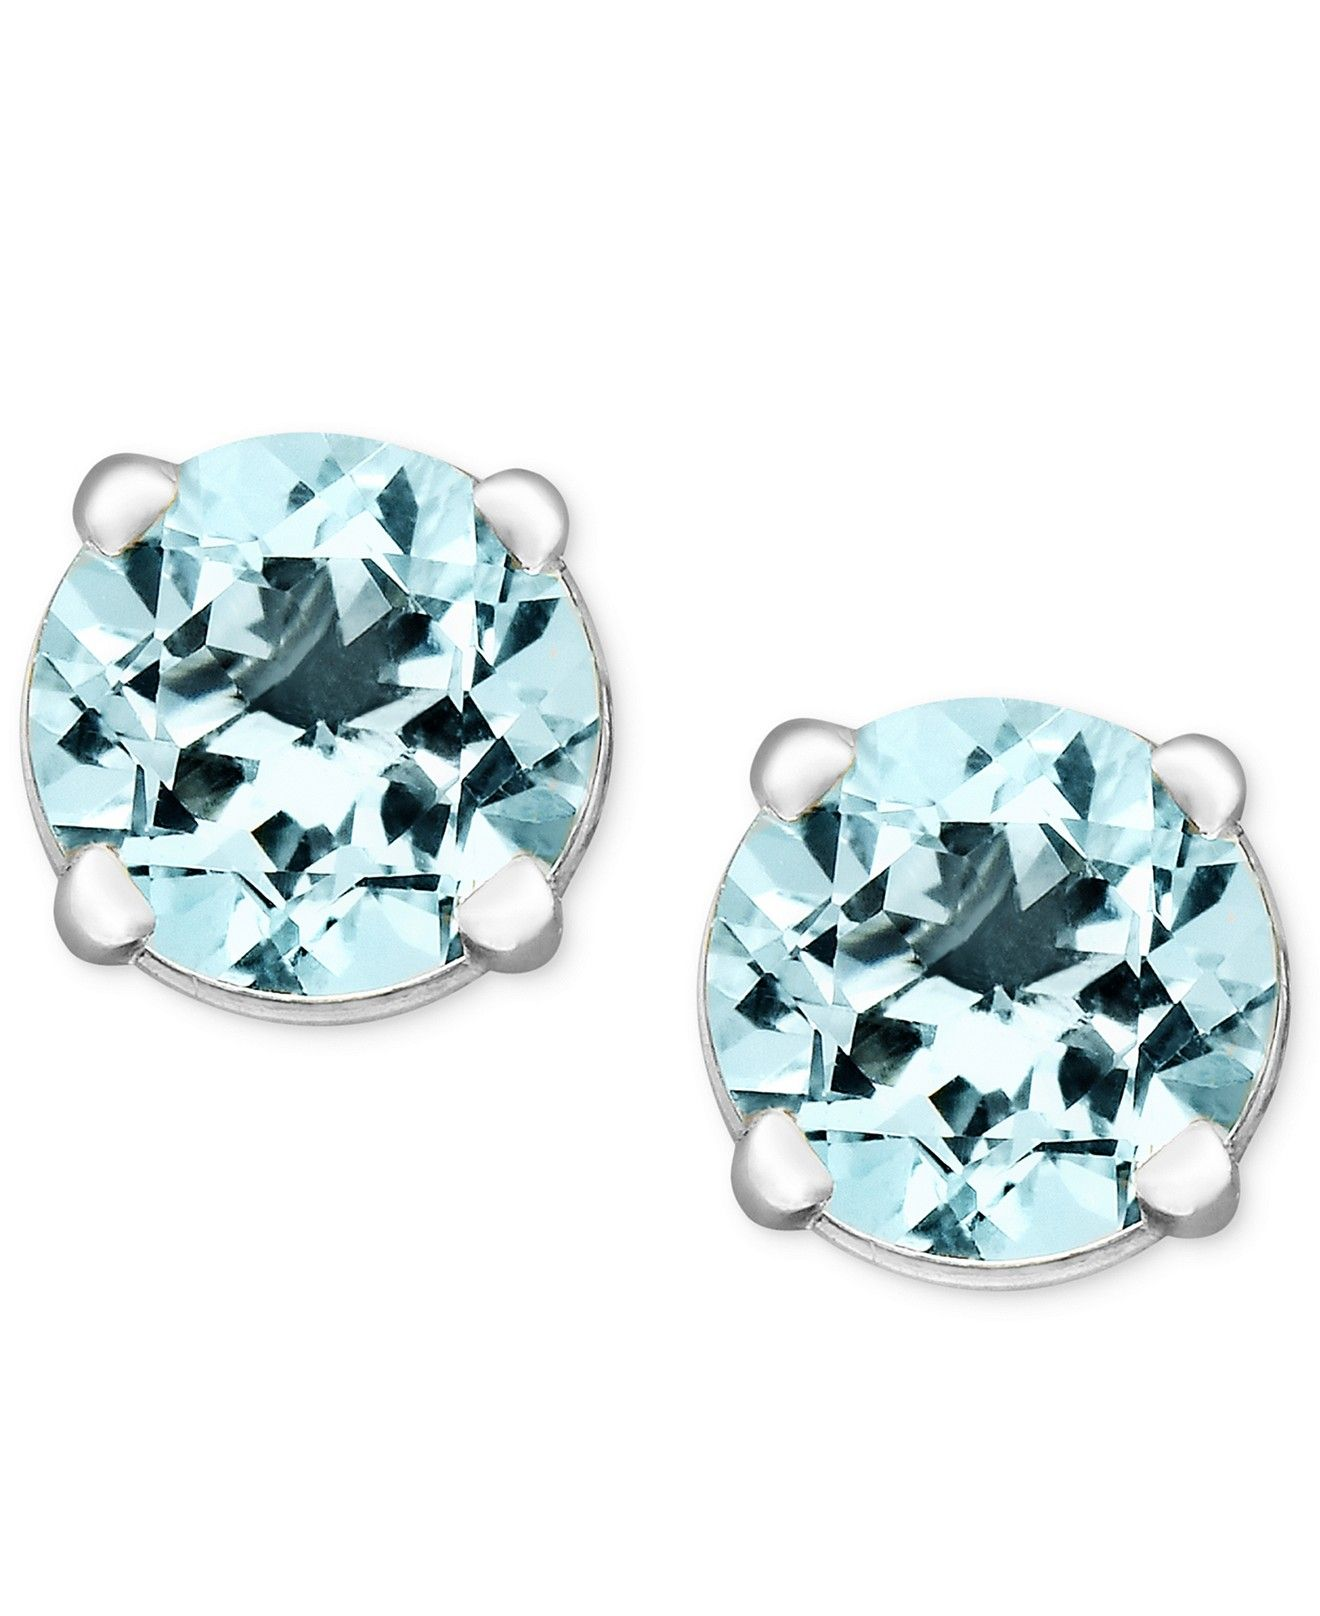 droplets pandora stud l marine march earrings silver birthstone aquamarine aqua